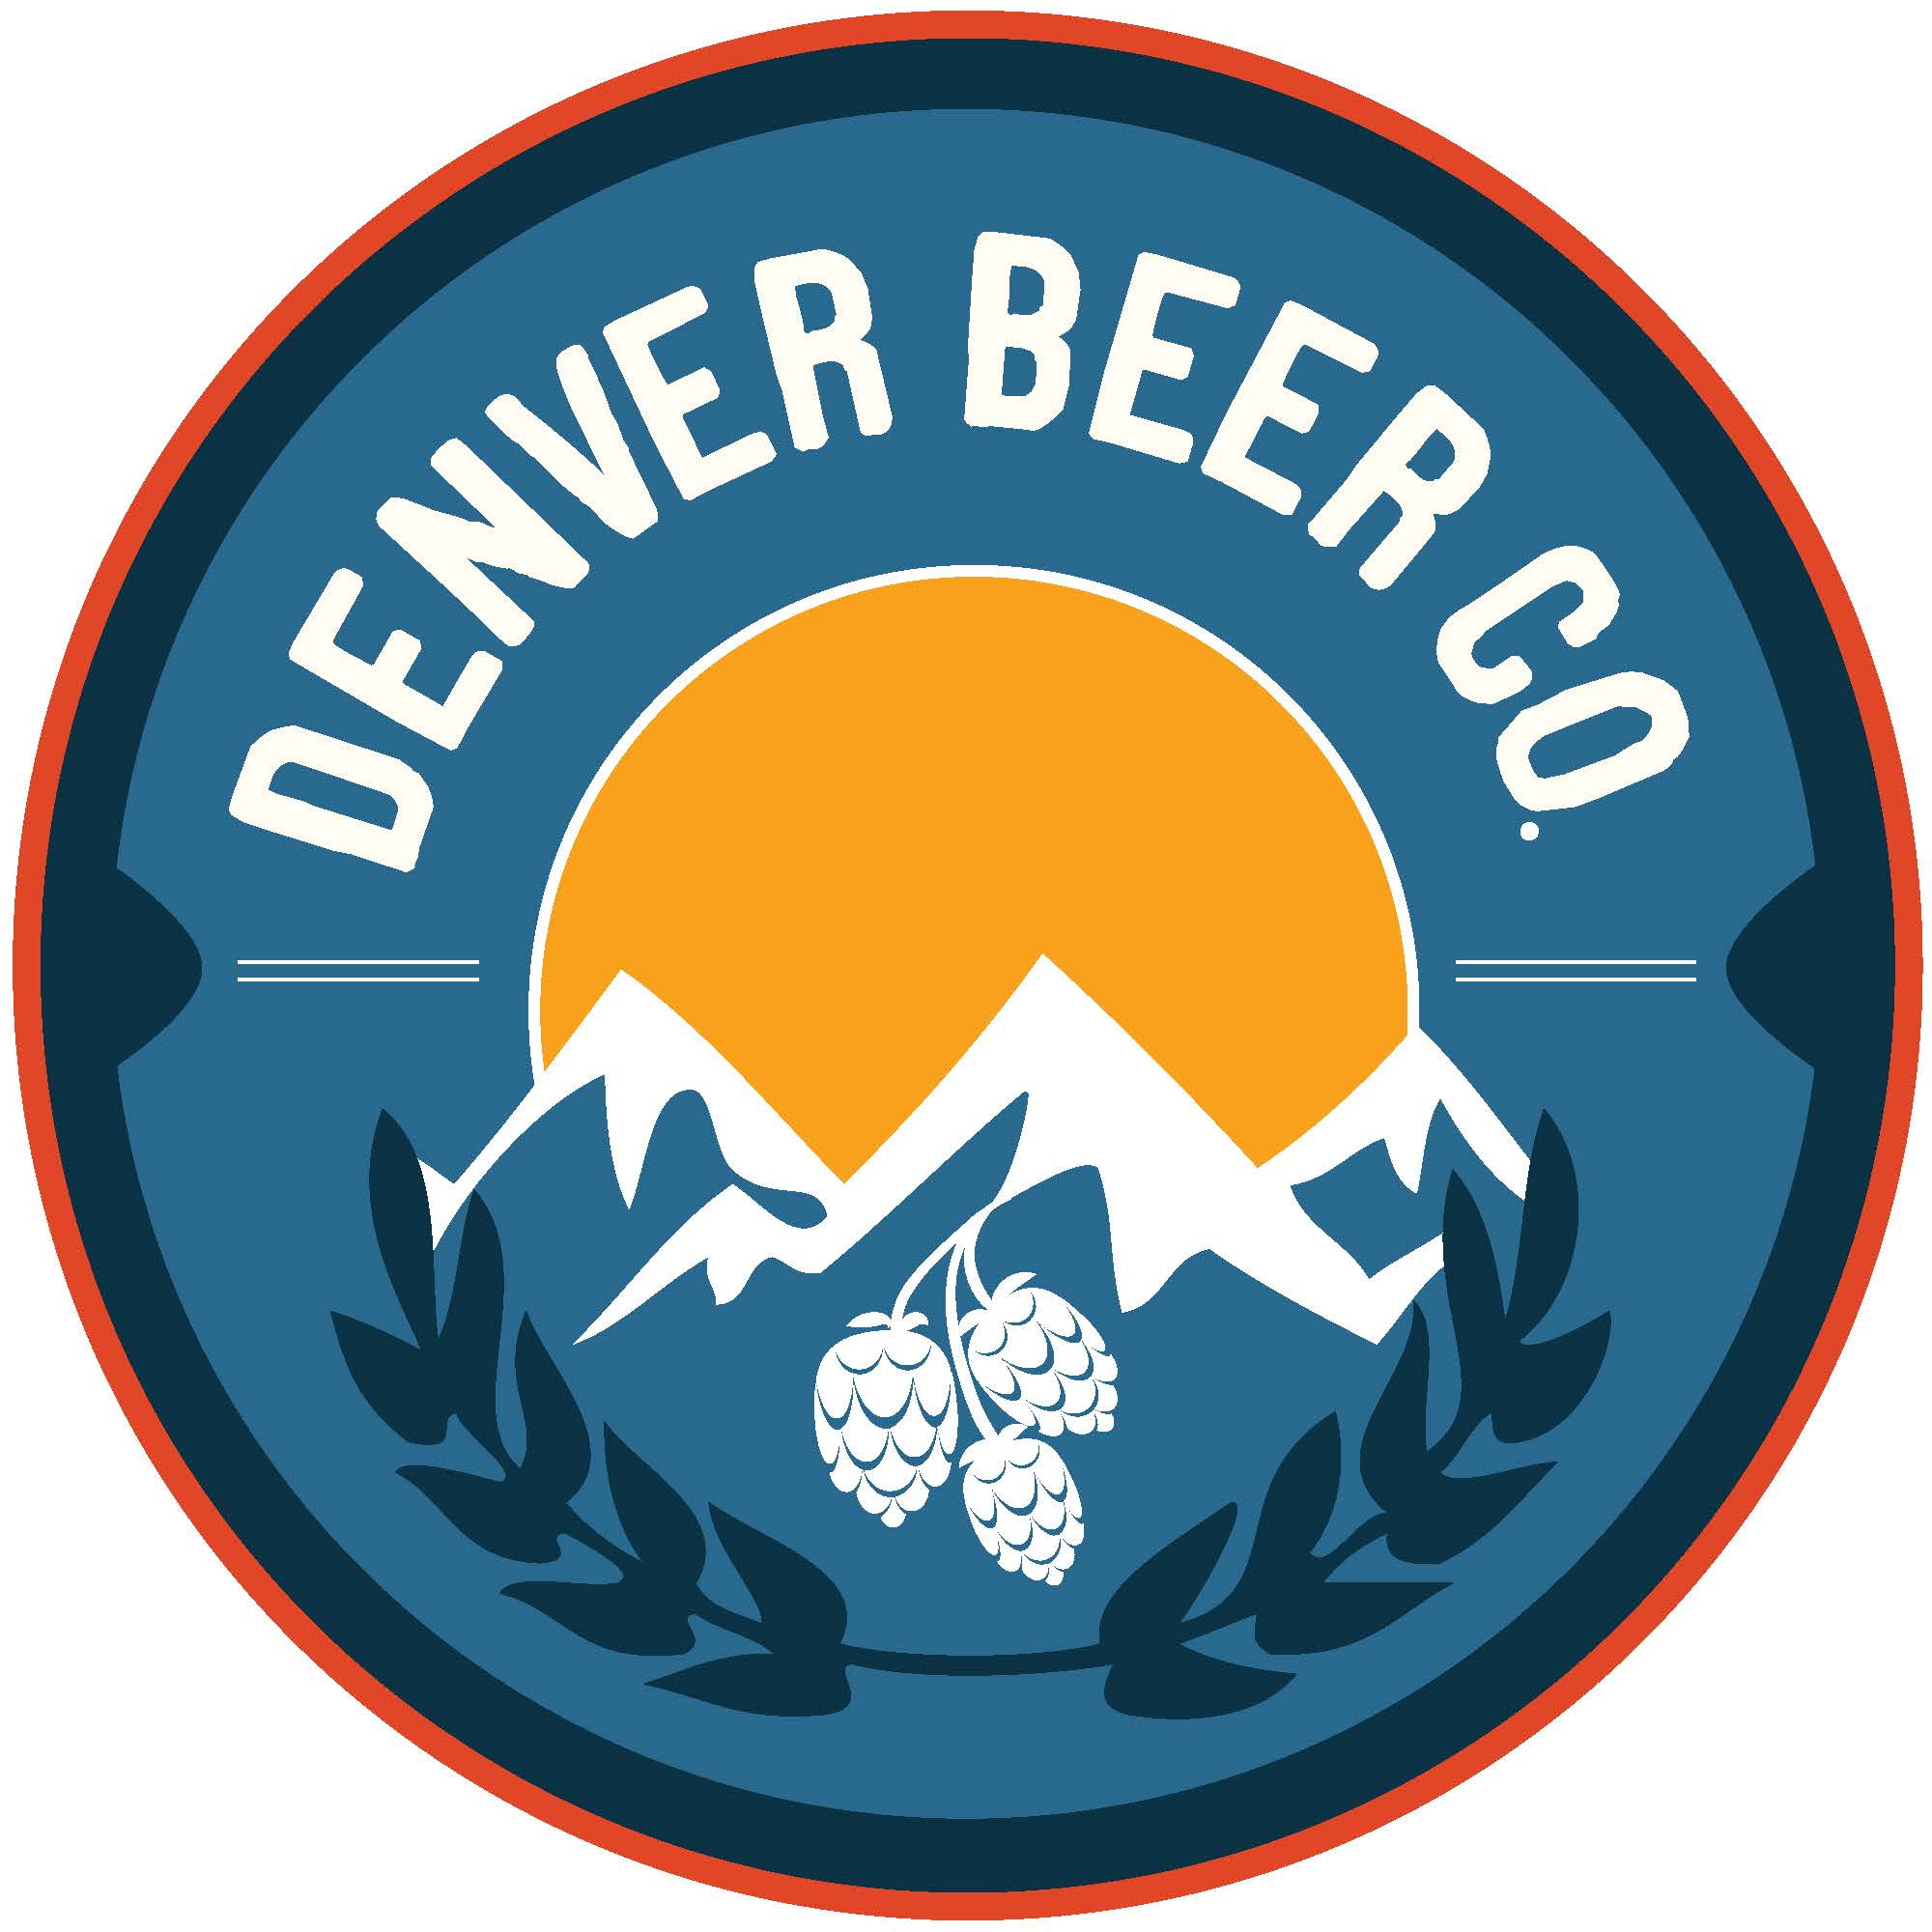 「denver brewing company」の画像検索結果